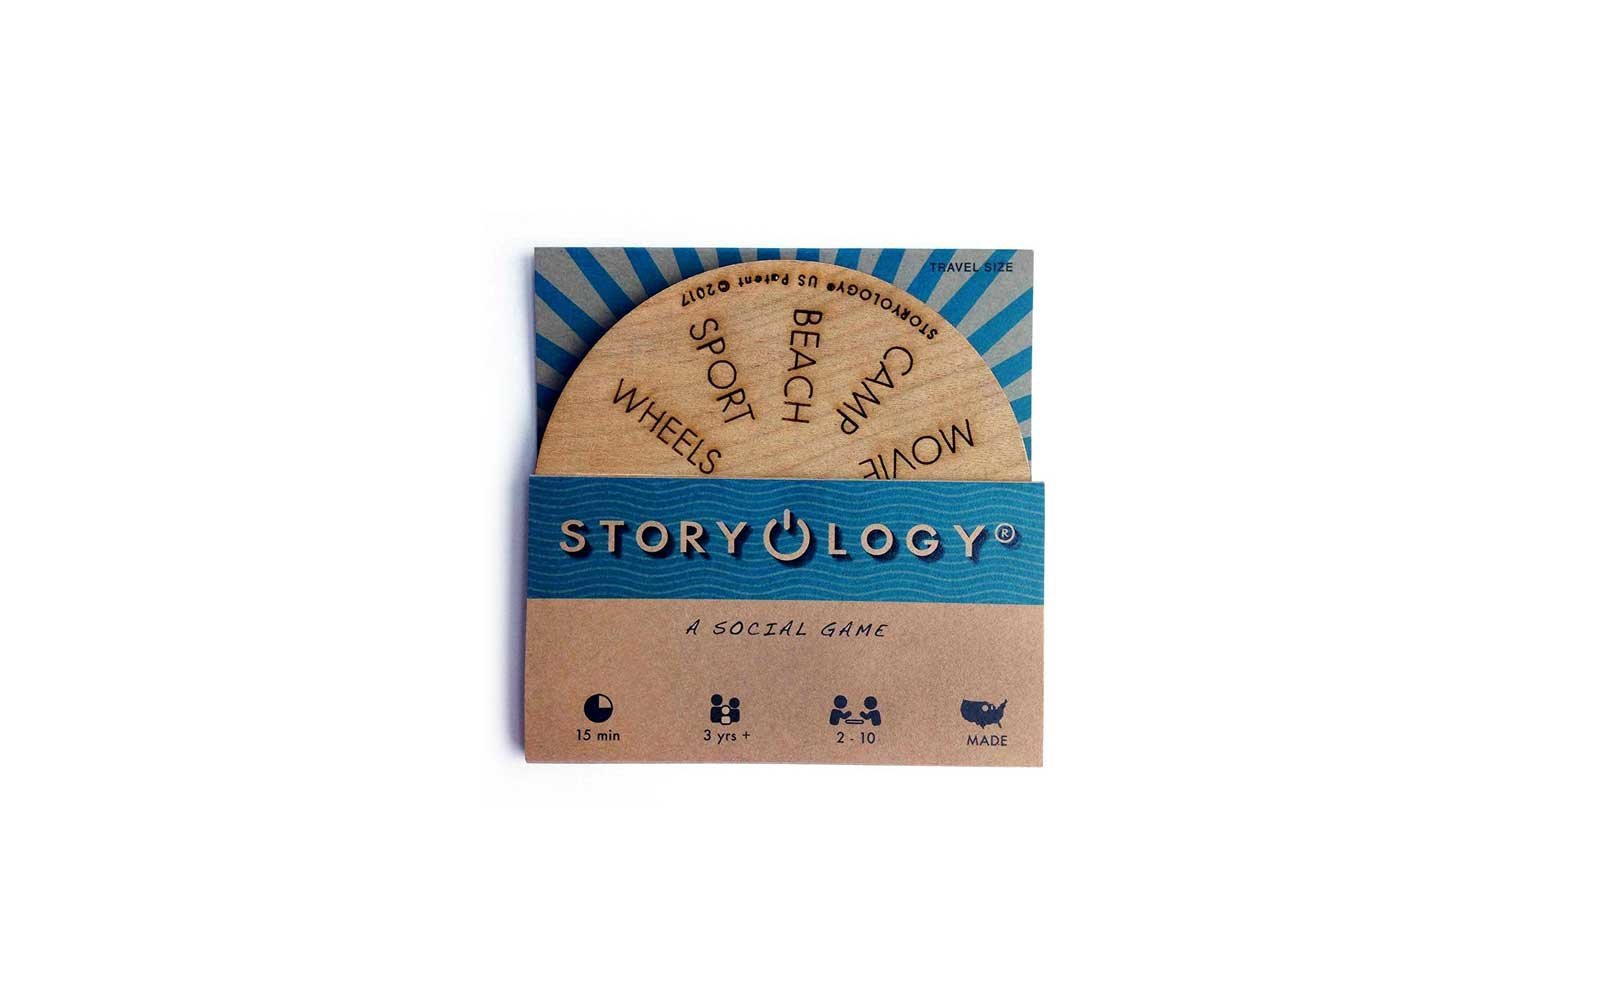 Travel-sized Storyology, The Social Game